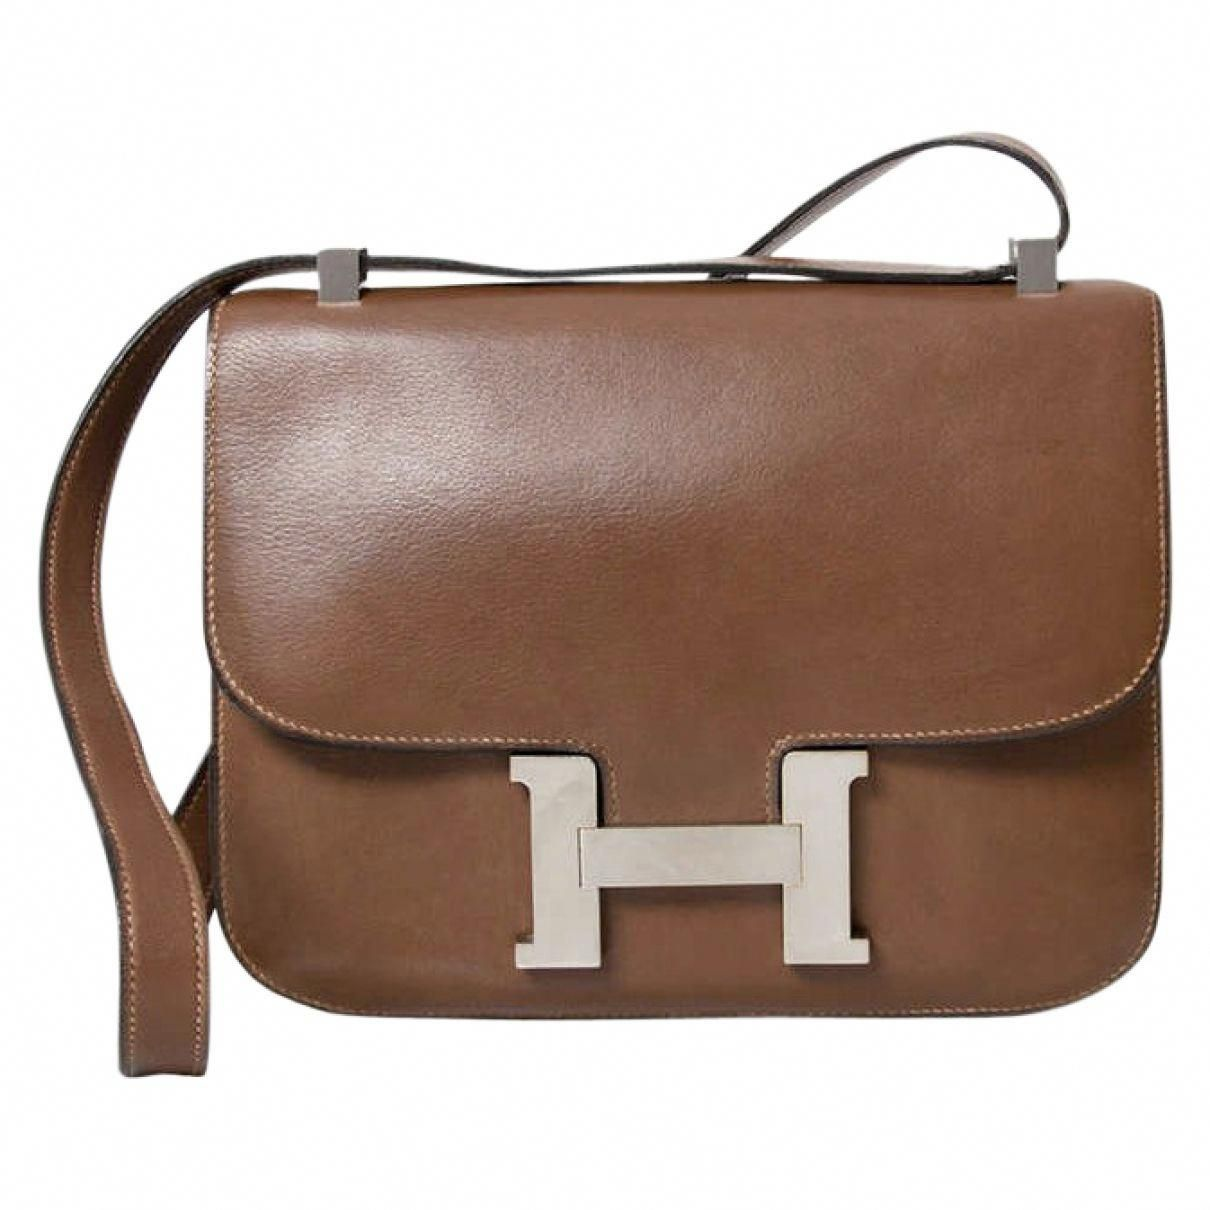 431d2cbfd HERMÈS Brown Leather Handbag Constance | Vestiaire Collective  #Hermeshandbags